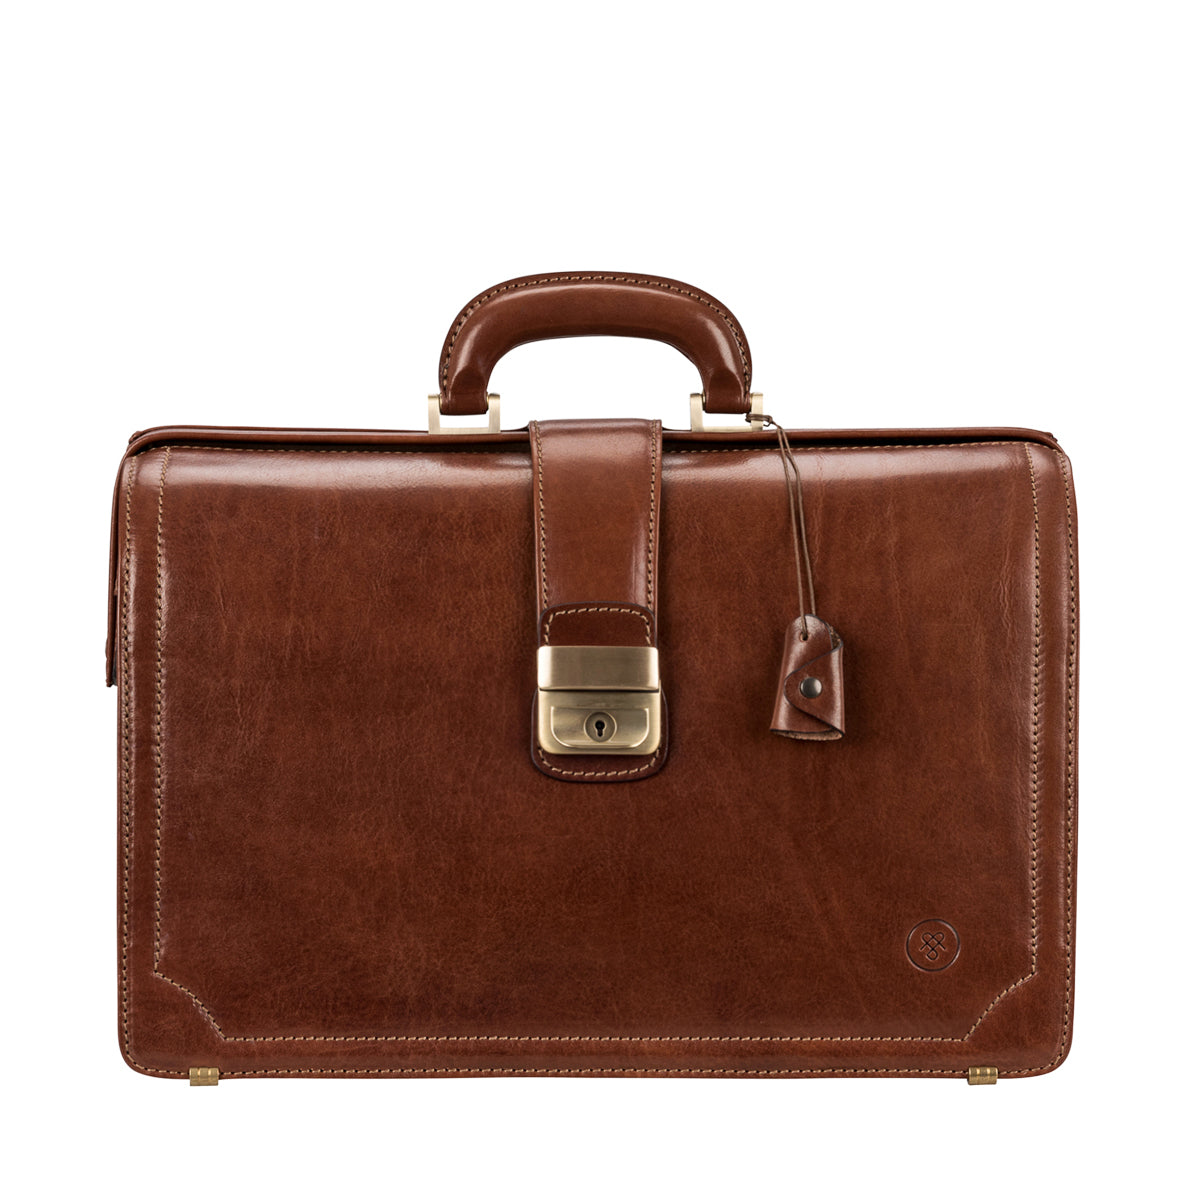 Image 1 of the 'Basilio' Chestnut Veg-Tanned Leather Executive Briefcase